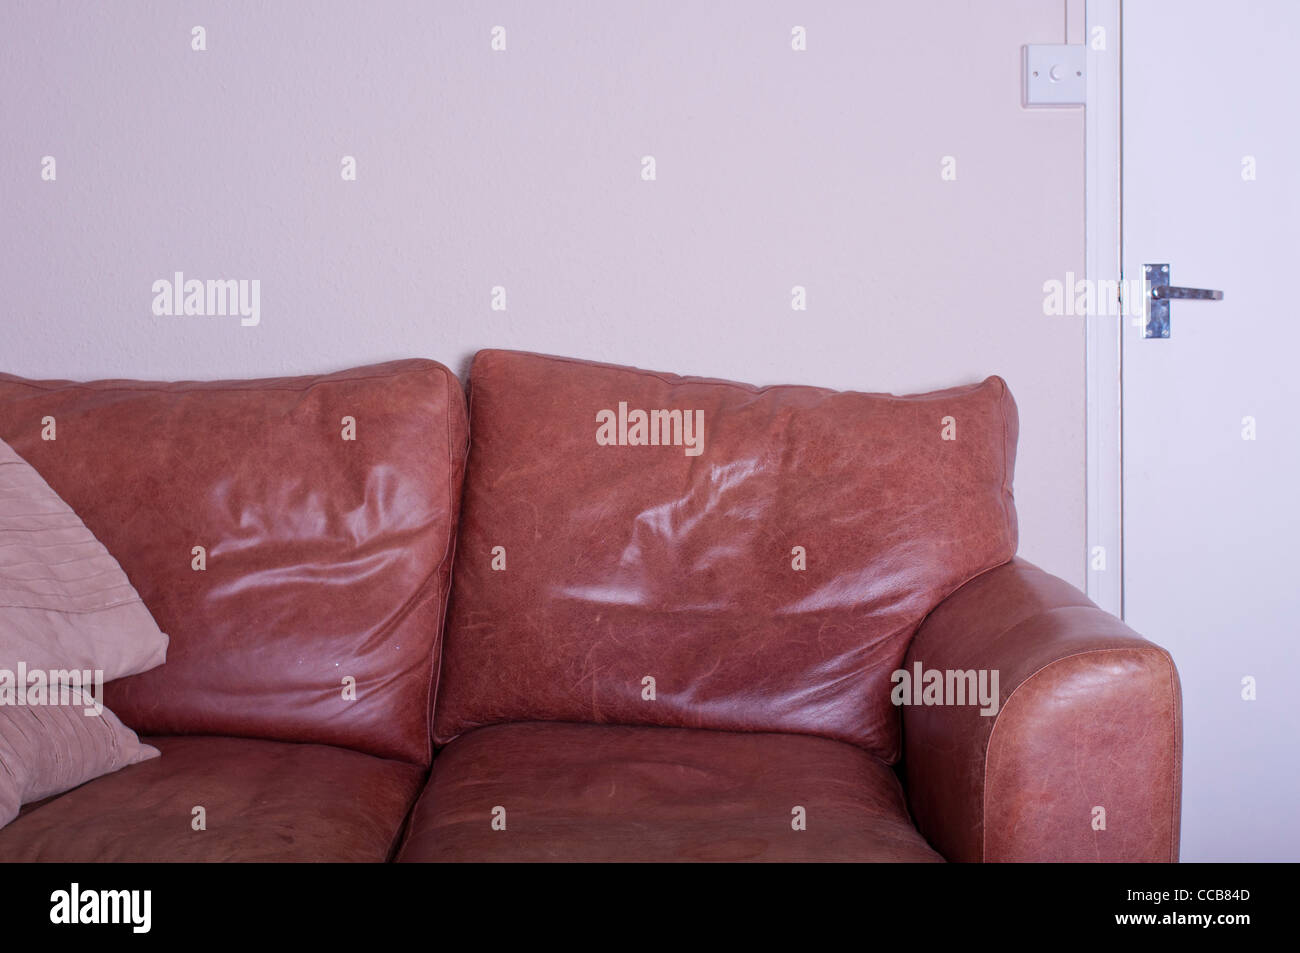 old sofa no people stockfotos old sofa no people bilder alamy. Black Bedroom Furniture Sets. Home Design Ideas